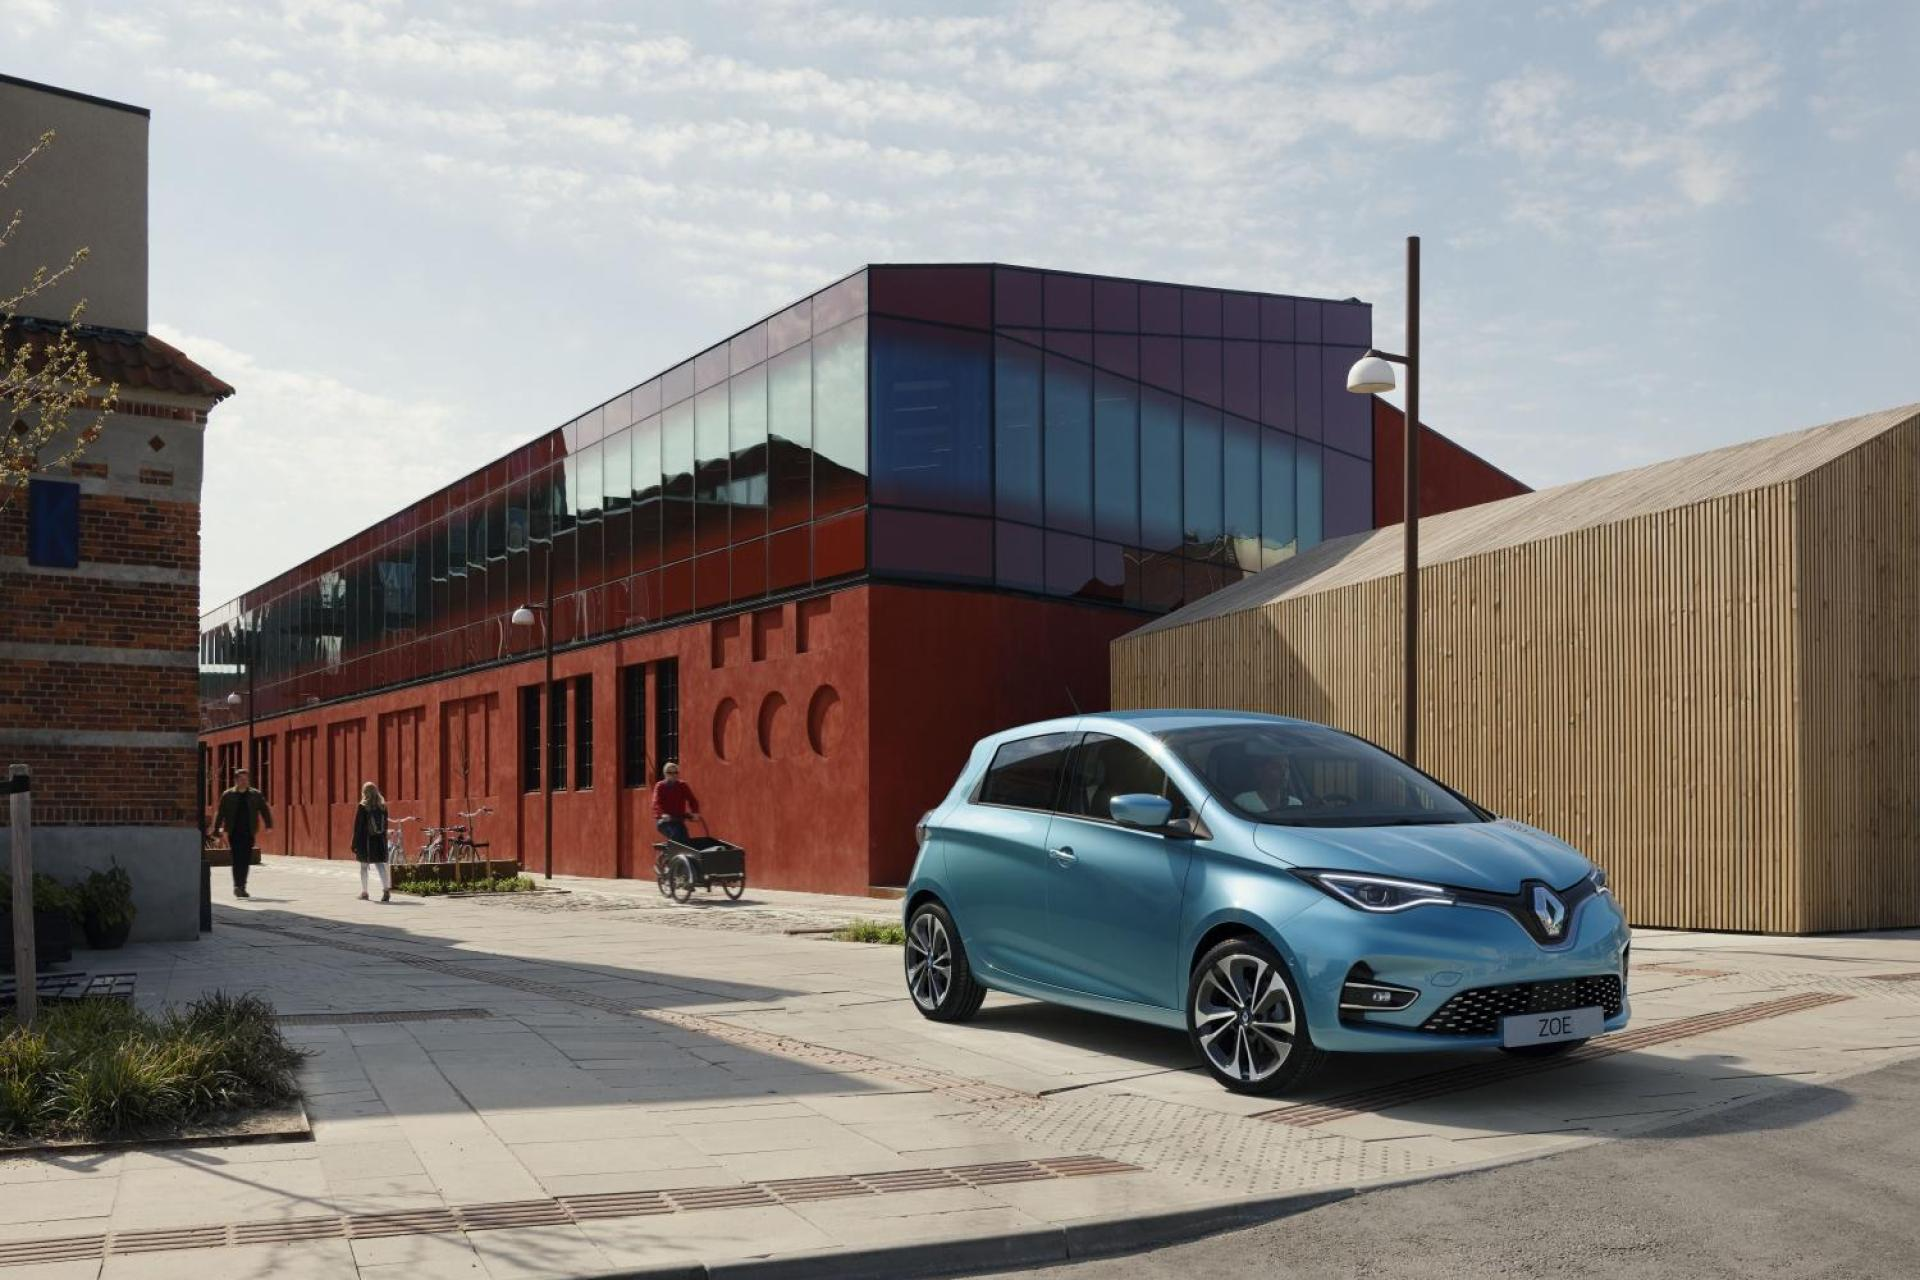 The Zoe uses a variety of recycled materials in its interior.